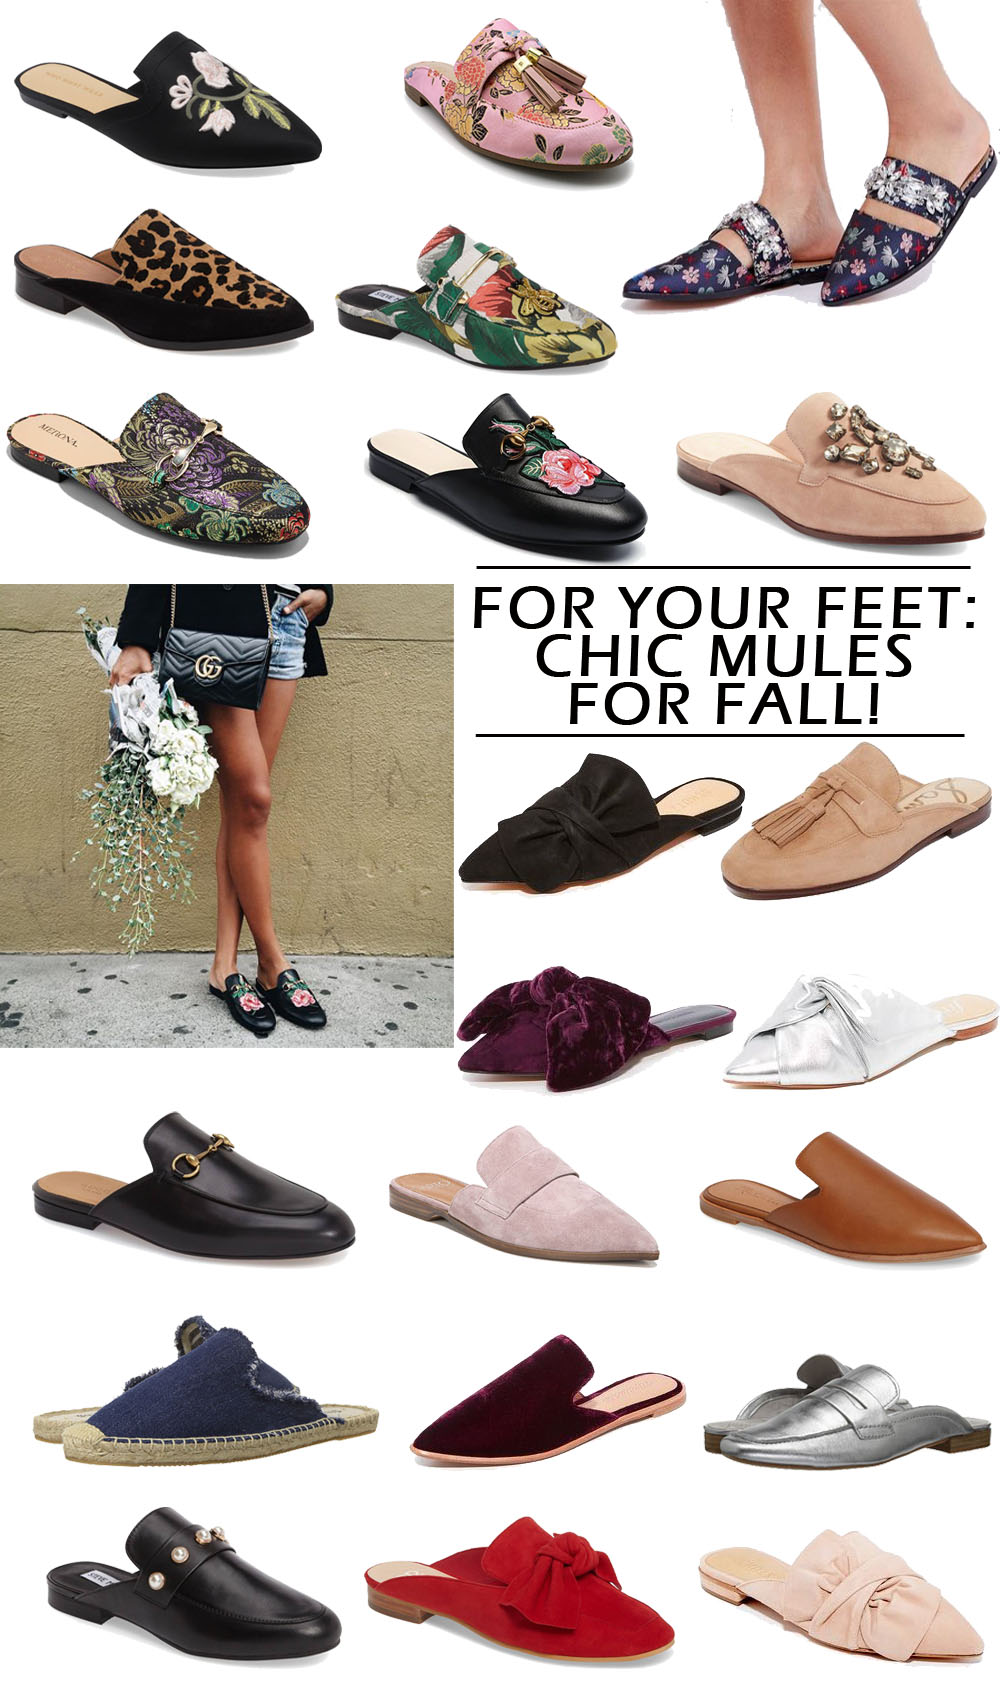 Mules for Fall! 20+ super wearable and chic styles to instantly update your outfit this fall